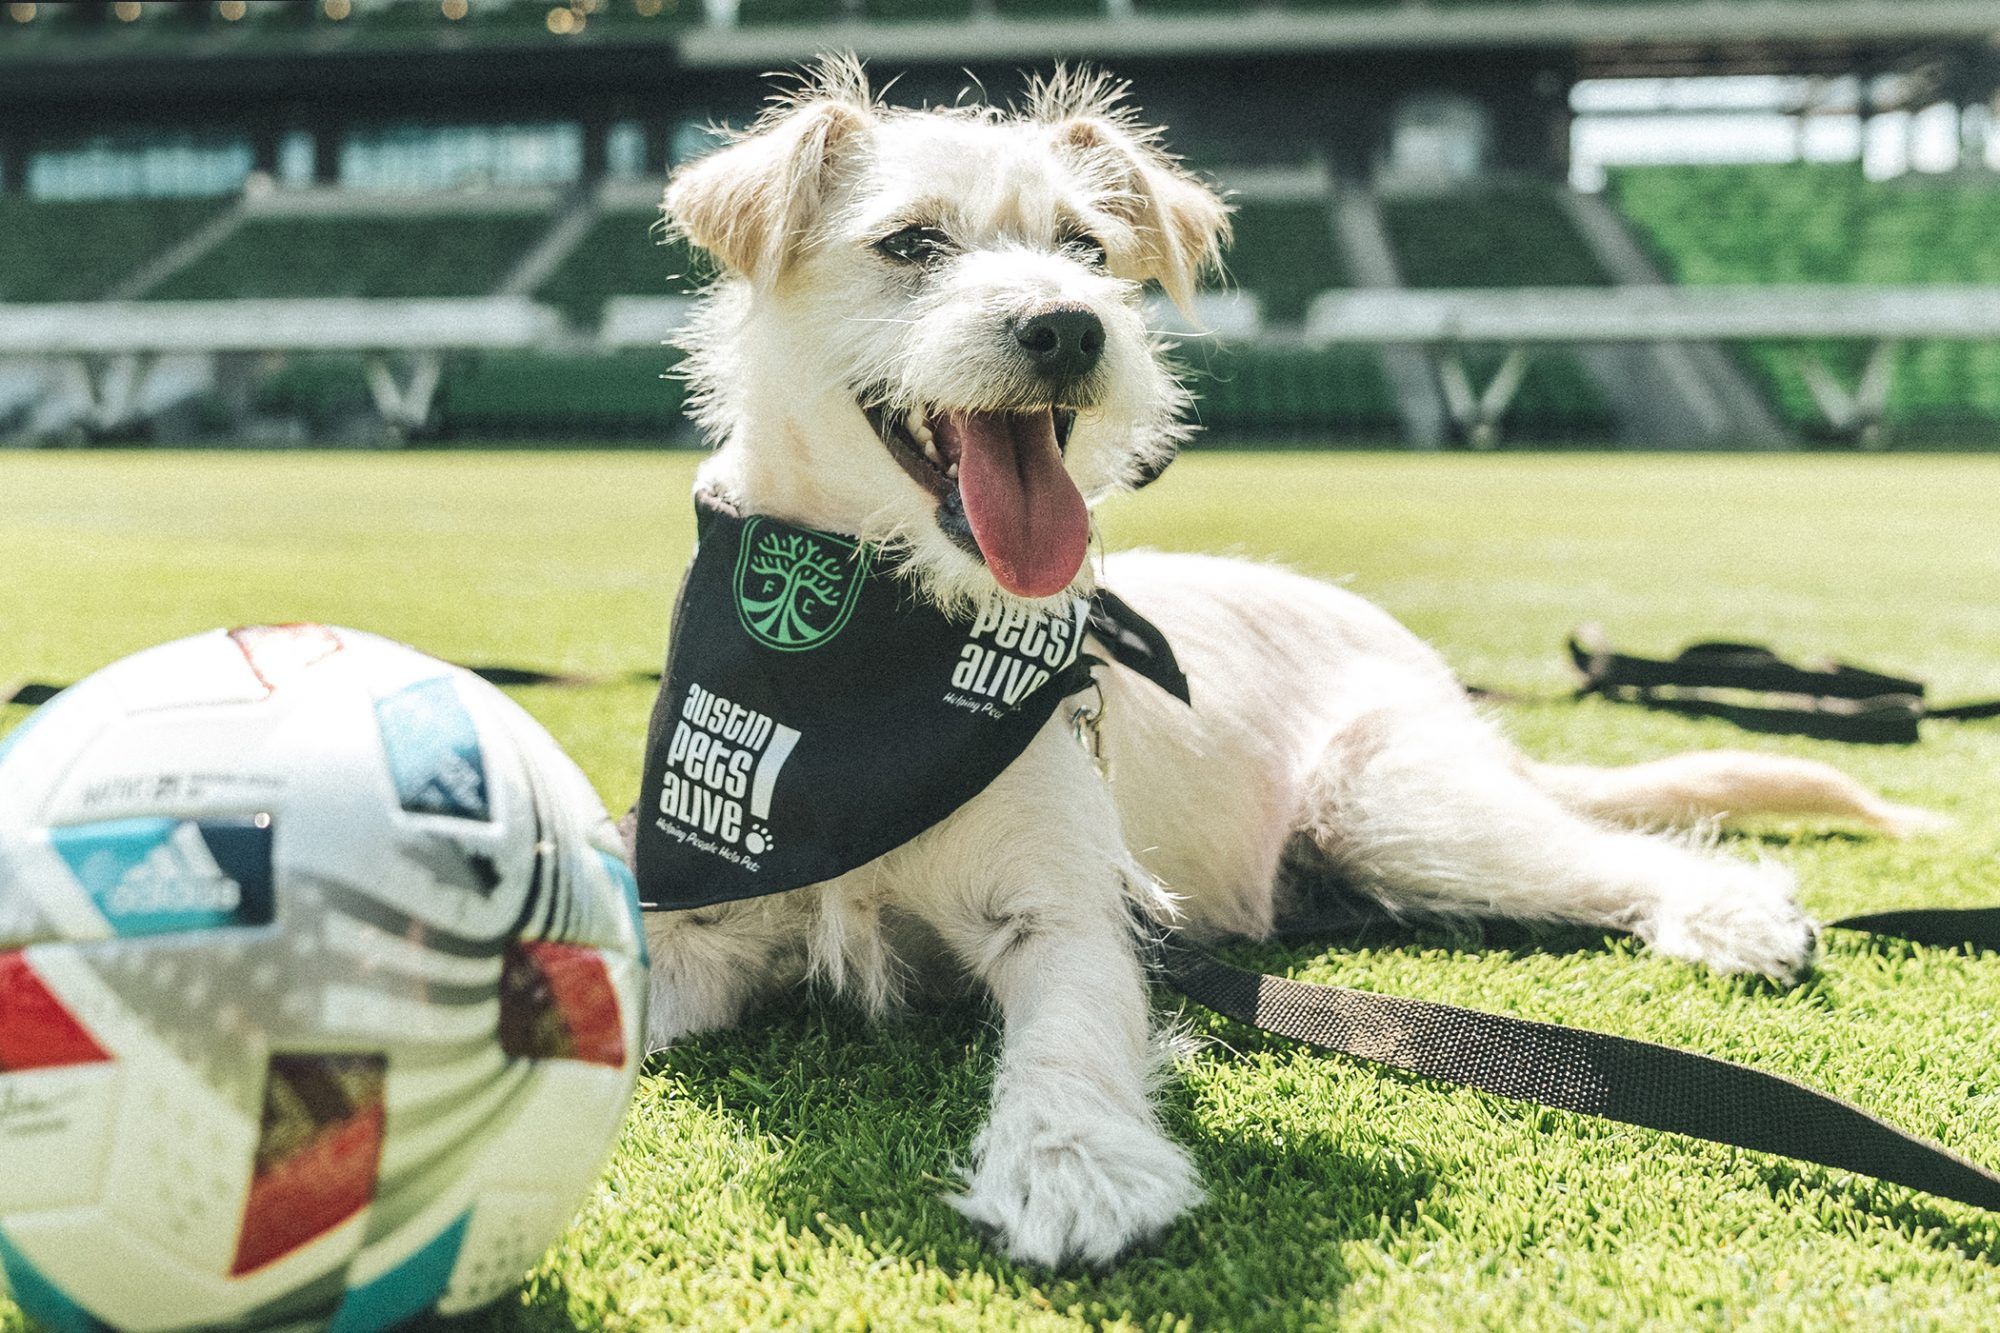 white dog posing on turf in stadium with soccer ball